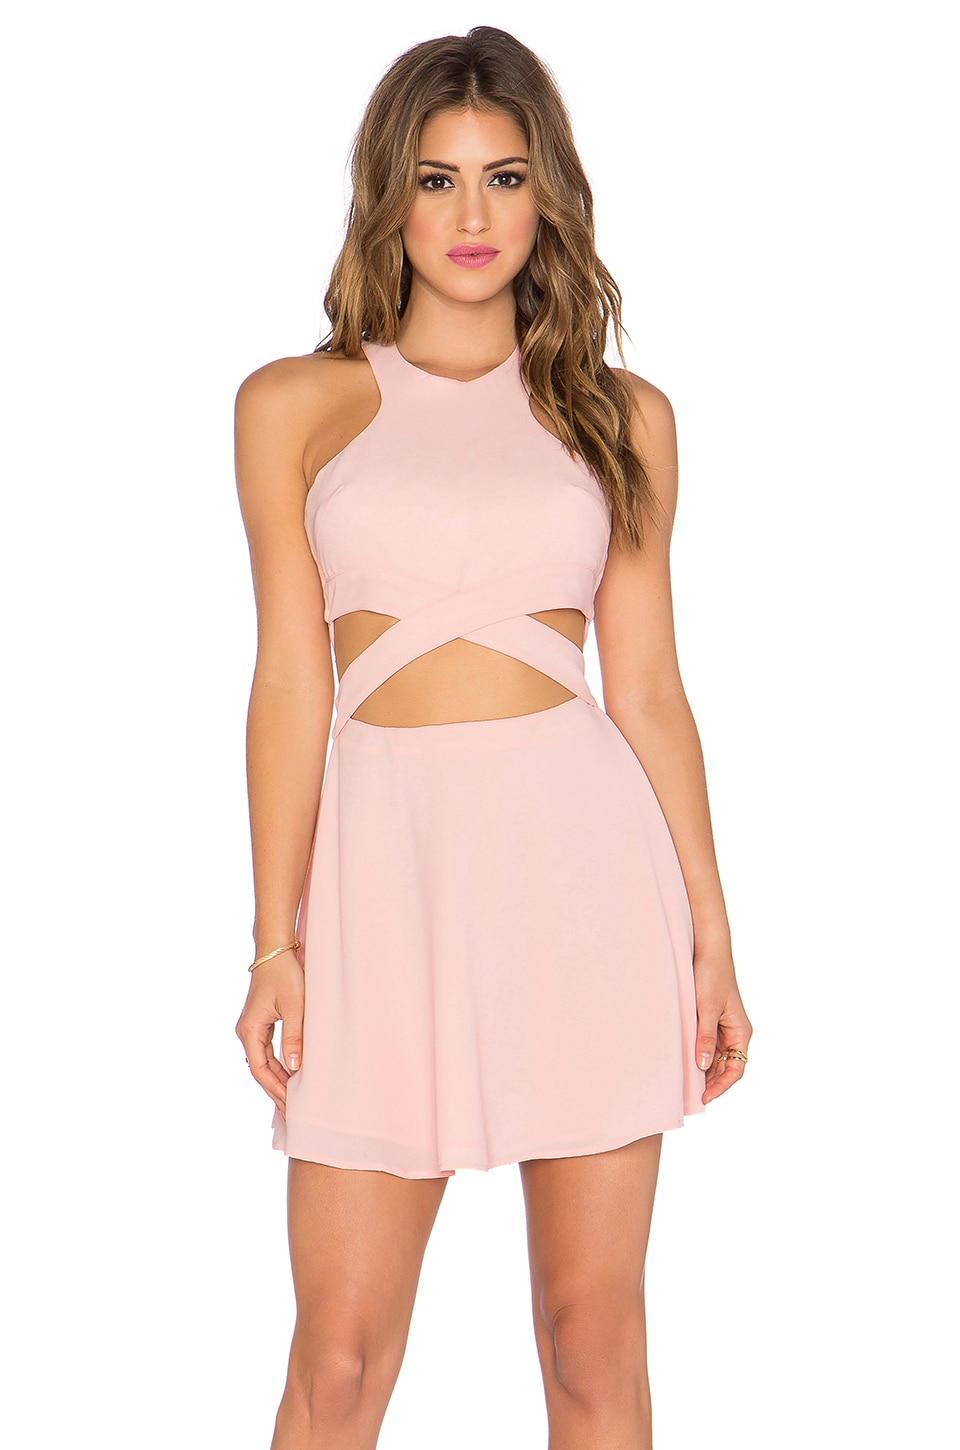 NBD x Naven Twins Chromat Fit & Flare Dress in Blush Pink